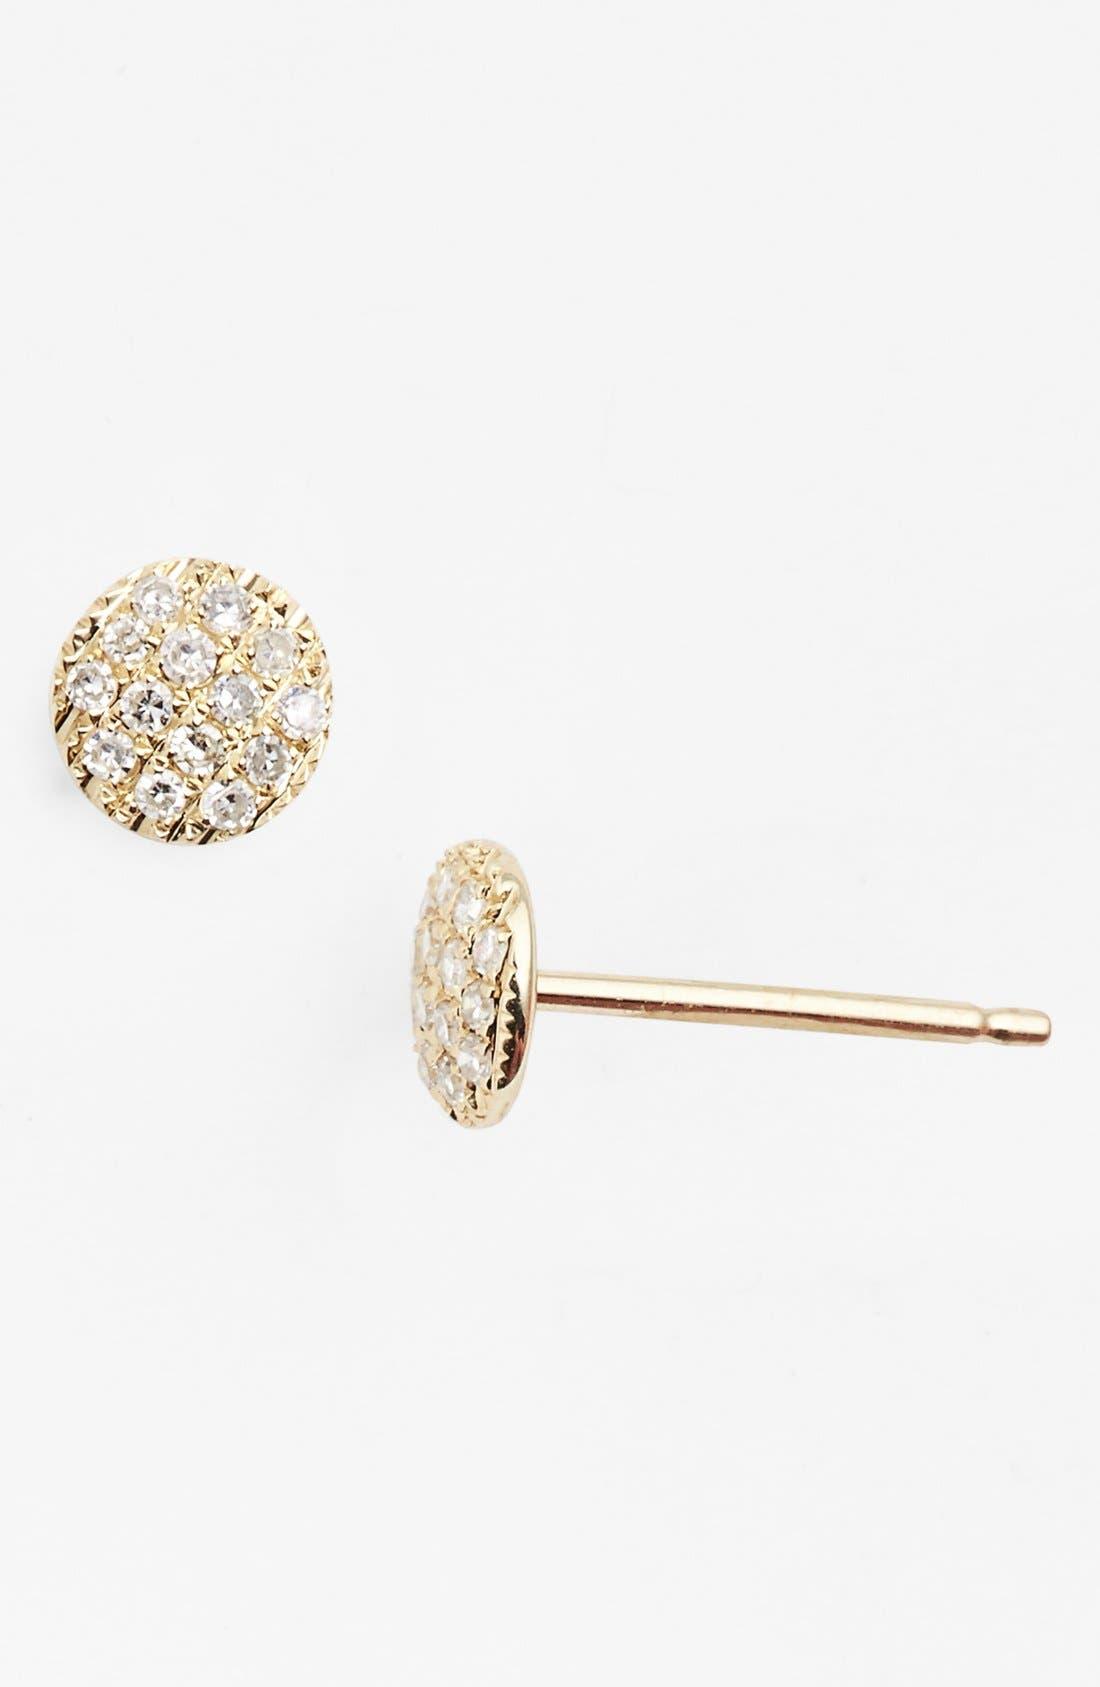 'Lauren Joy' Diamond Disc Stud Earrings,                         Main,                         color, Yellow Gold